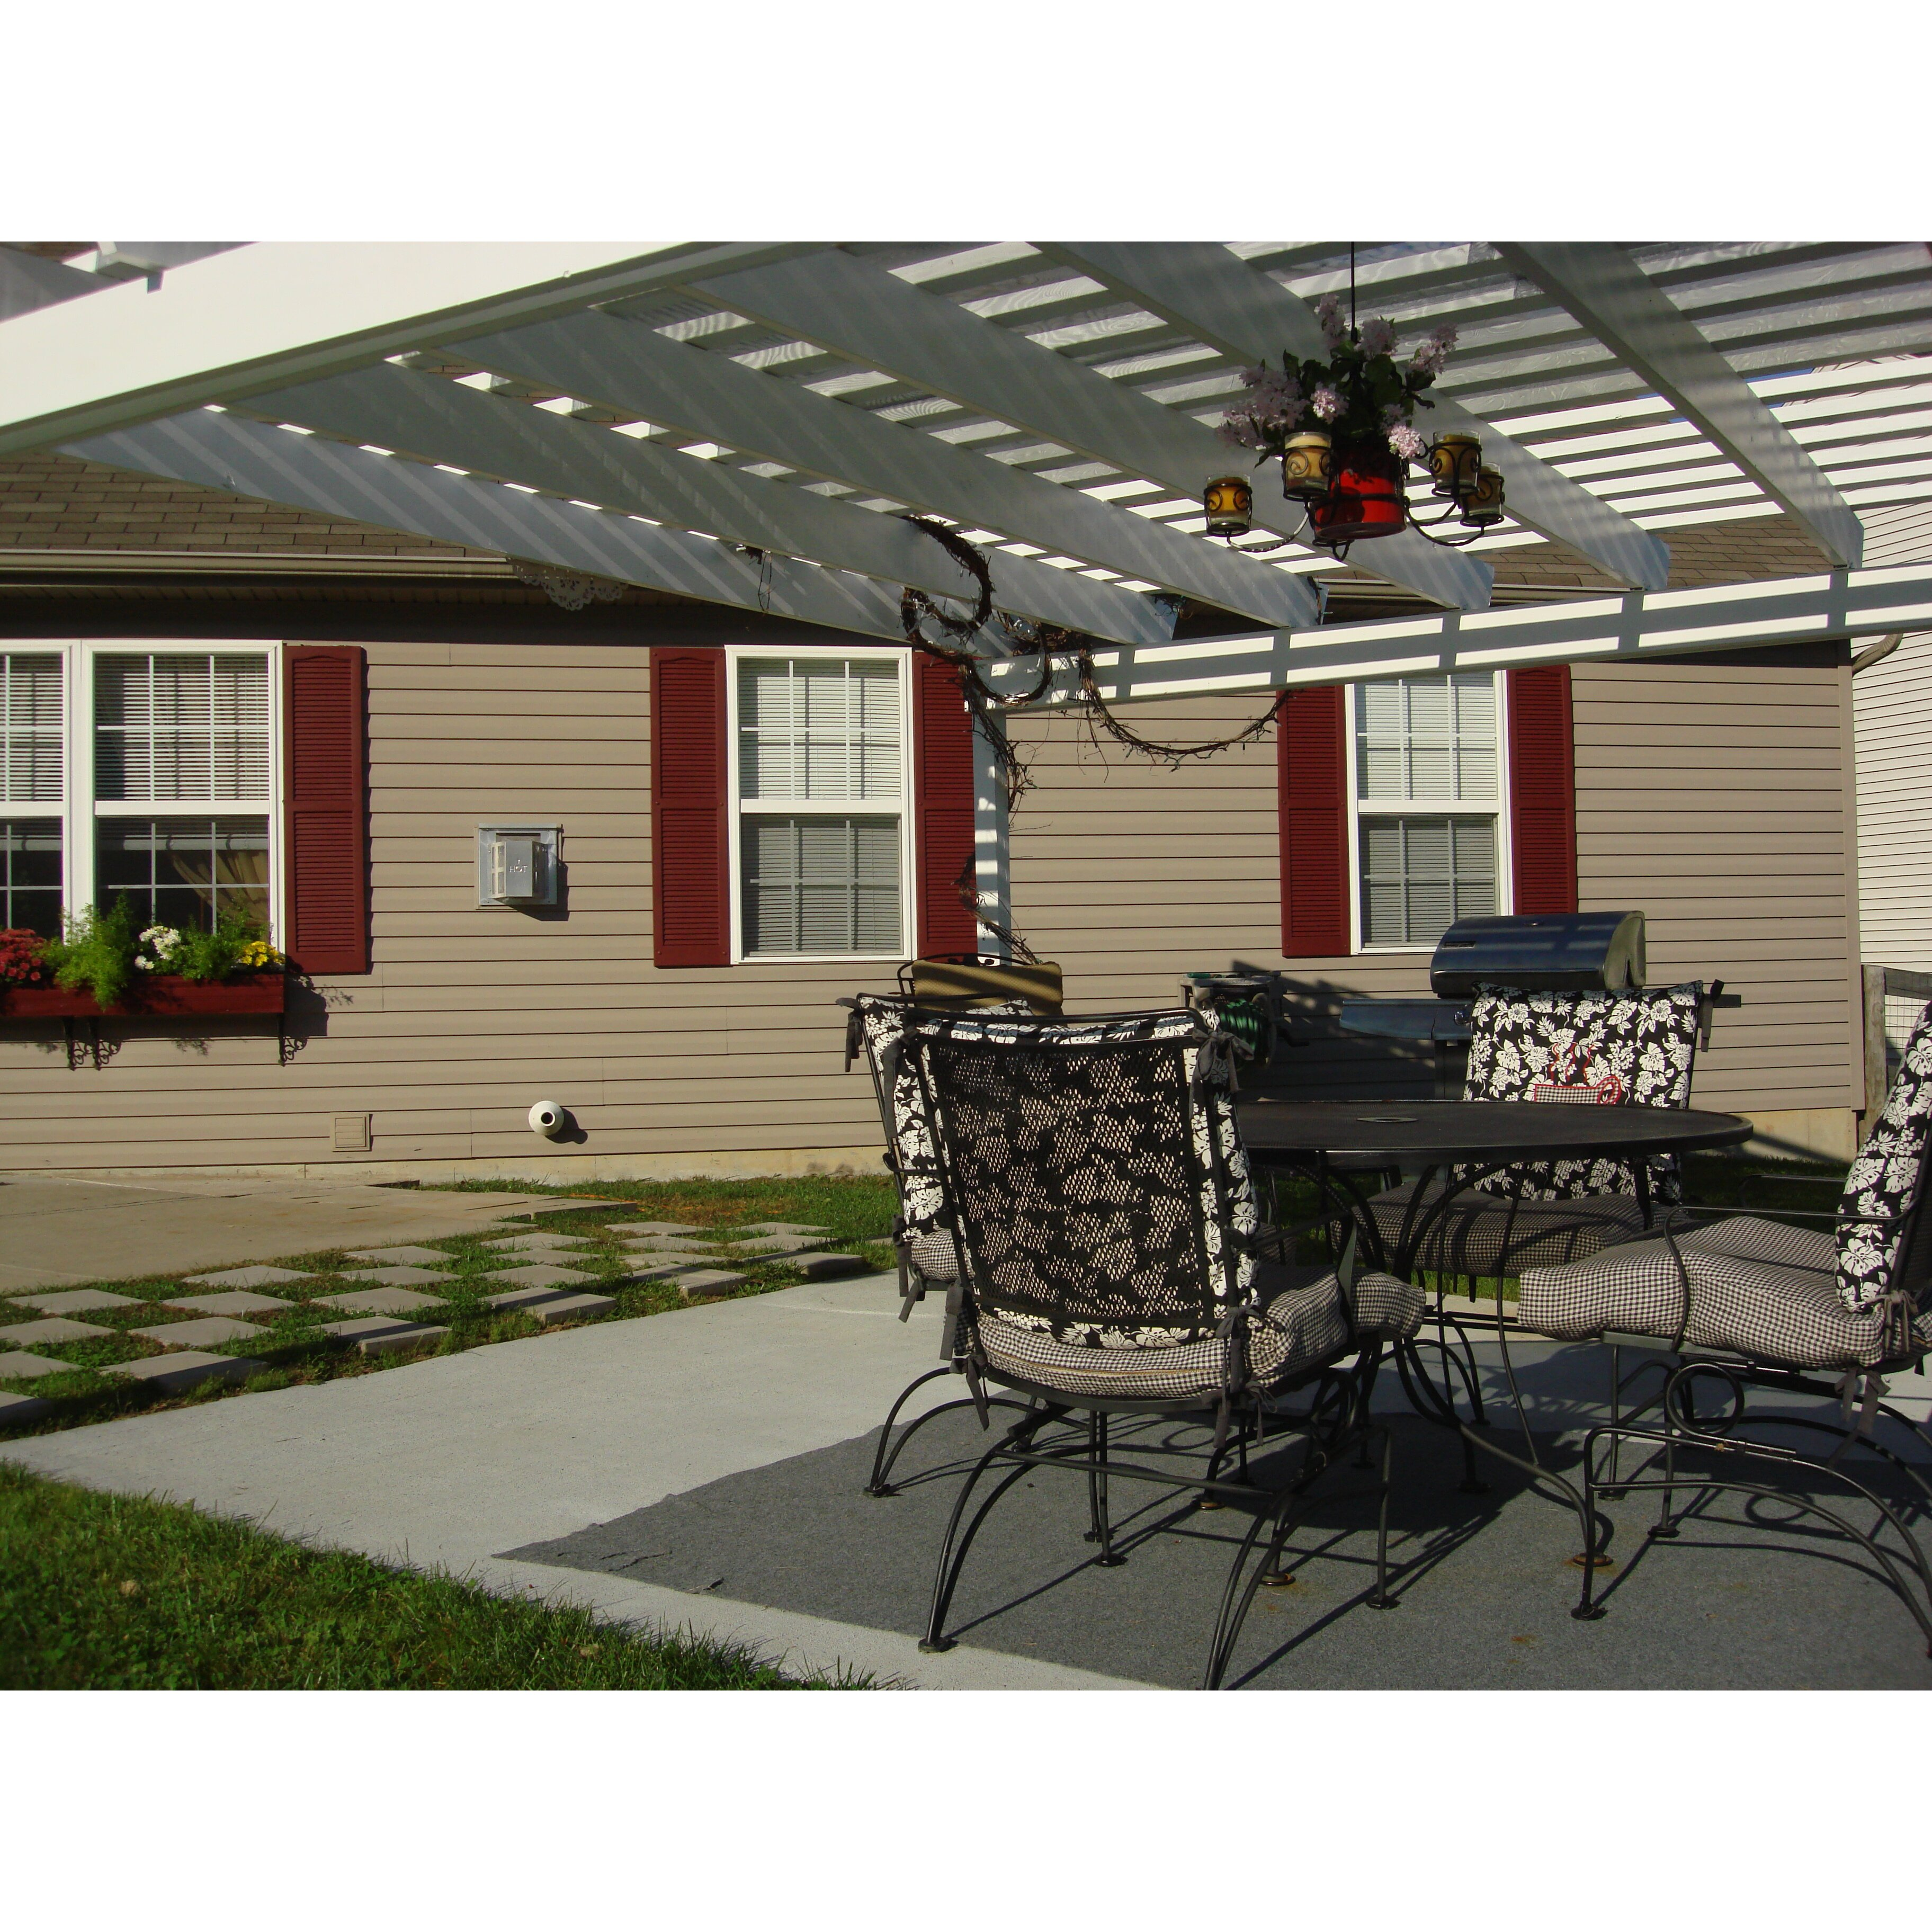 Alpha shutters exterior 14 x 55 louvered shutter - Severe weather exterior shutters lowes ...